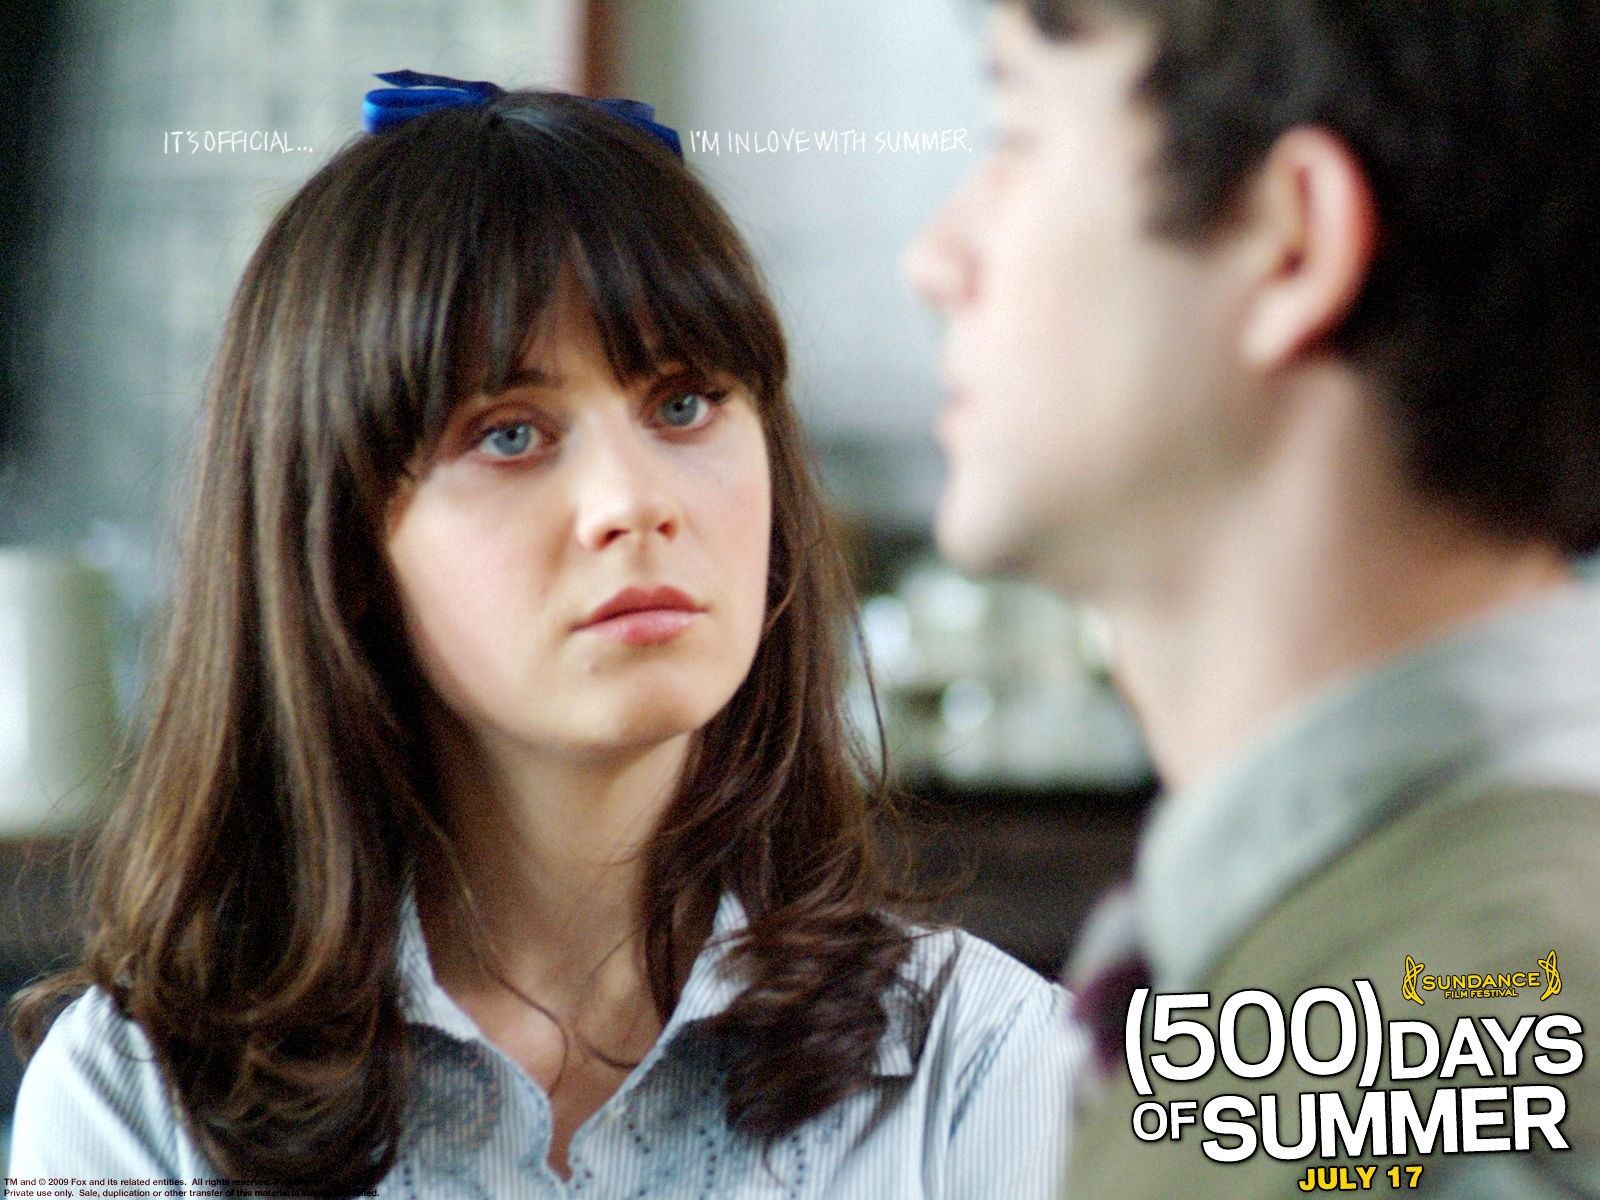 500_days_of_summer04.jpg